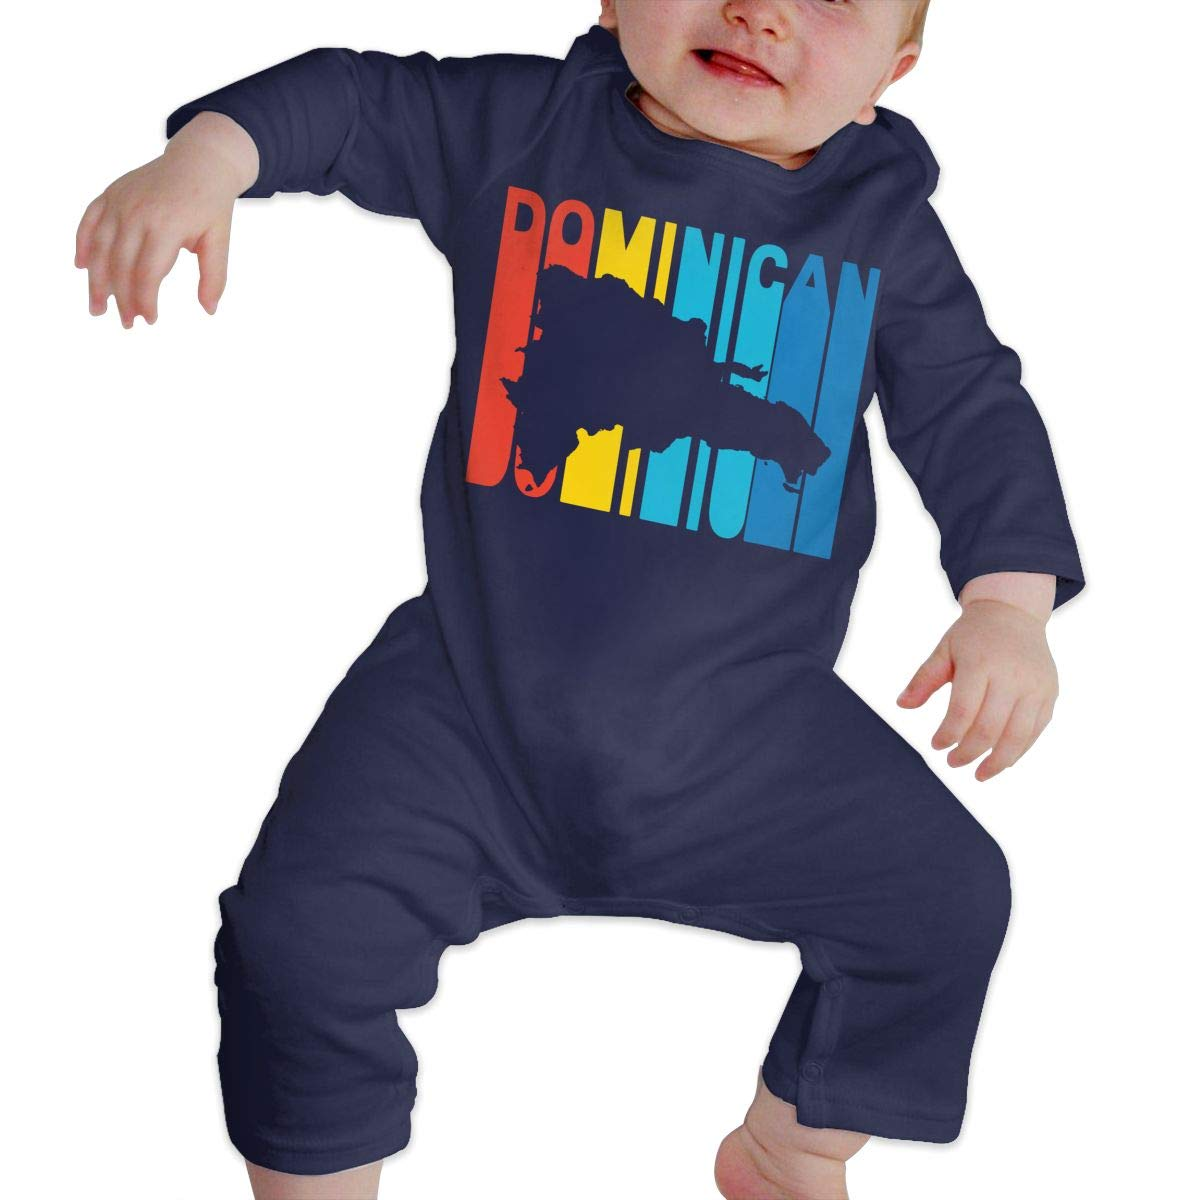 LBJQ8 Dominican Retro 1970s Style Infant Baby Girl Boys Organic Cotton Bodysuit Outfits Clothes